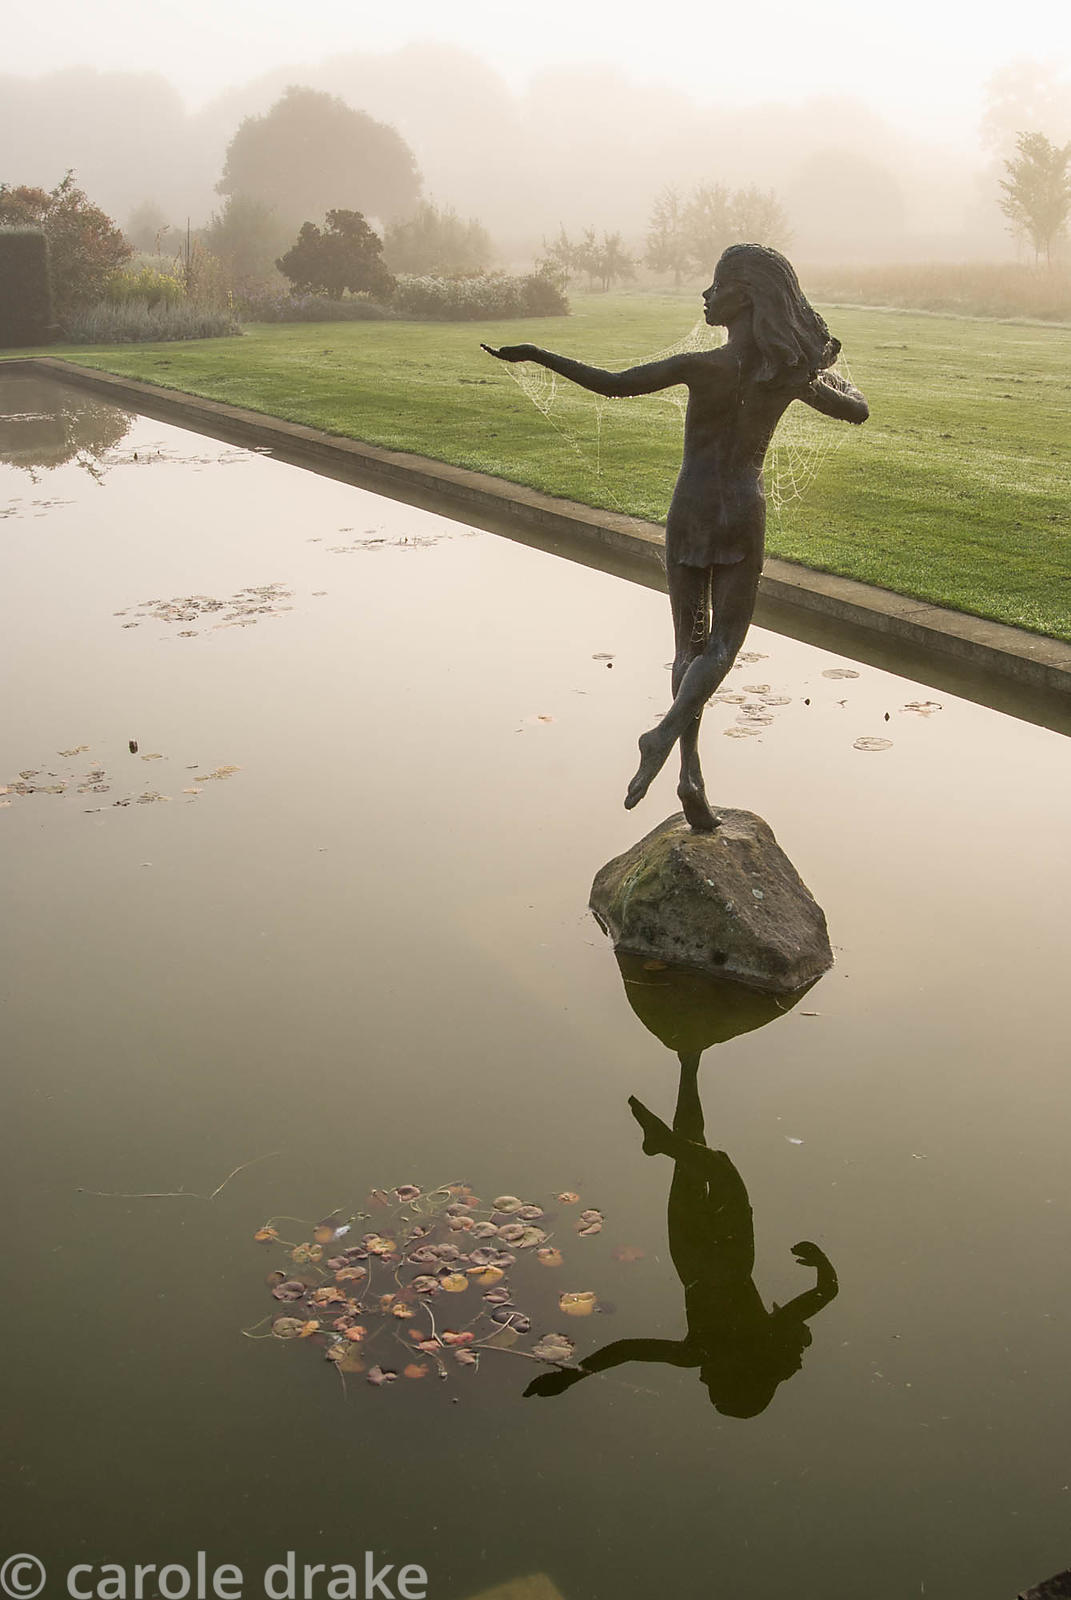 'Miranda' by Tanya Russel at the head of the water lily canal. Waterperry Gardens, Wheatley, Oxfordshire, UK